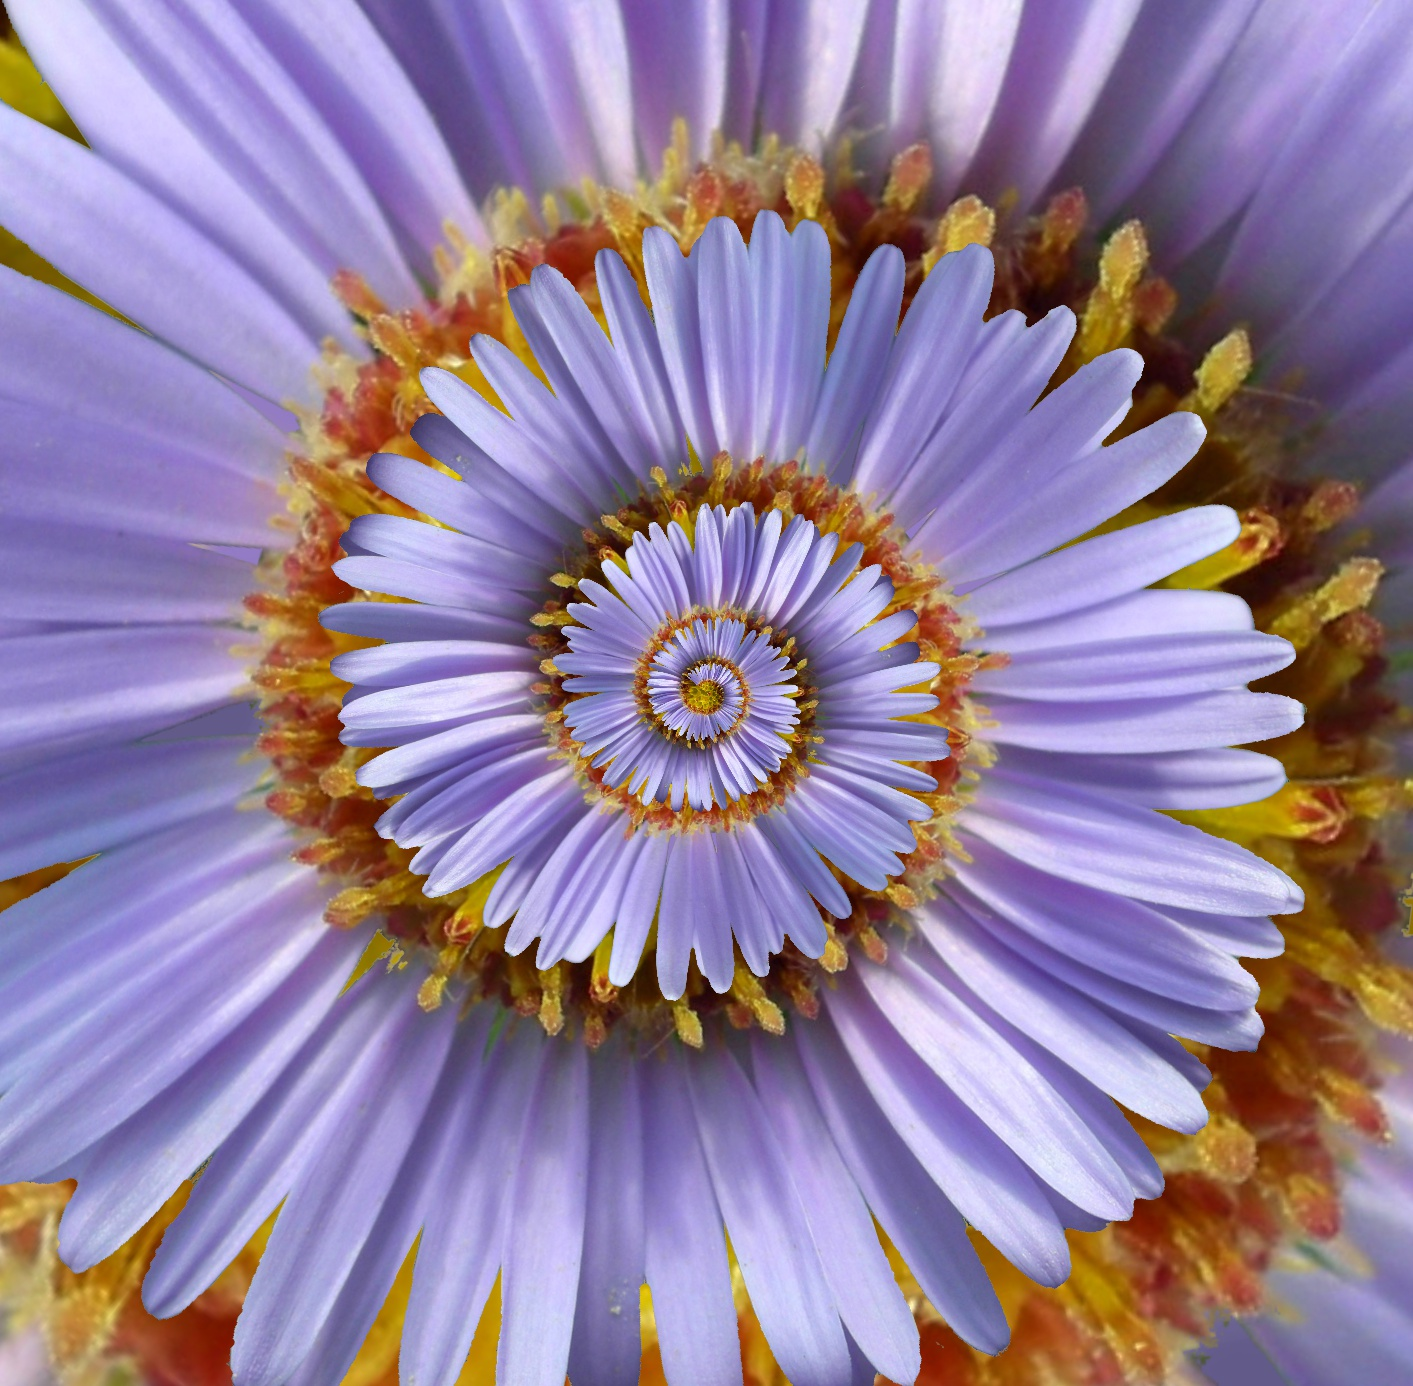 File:Aster Tataricus droste effect.jpg - Wikimedia Commons